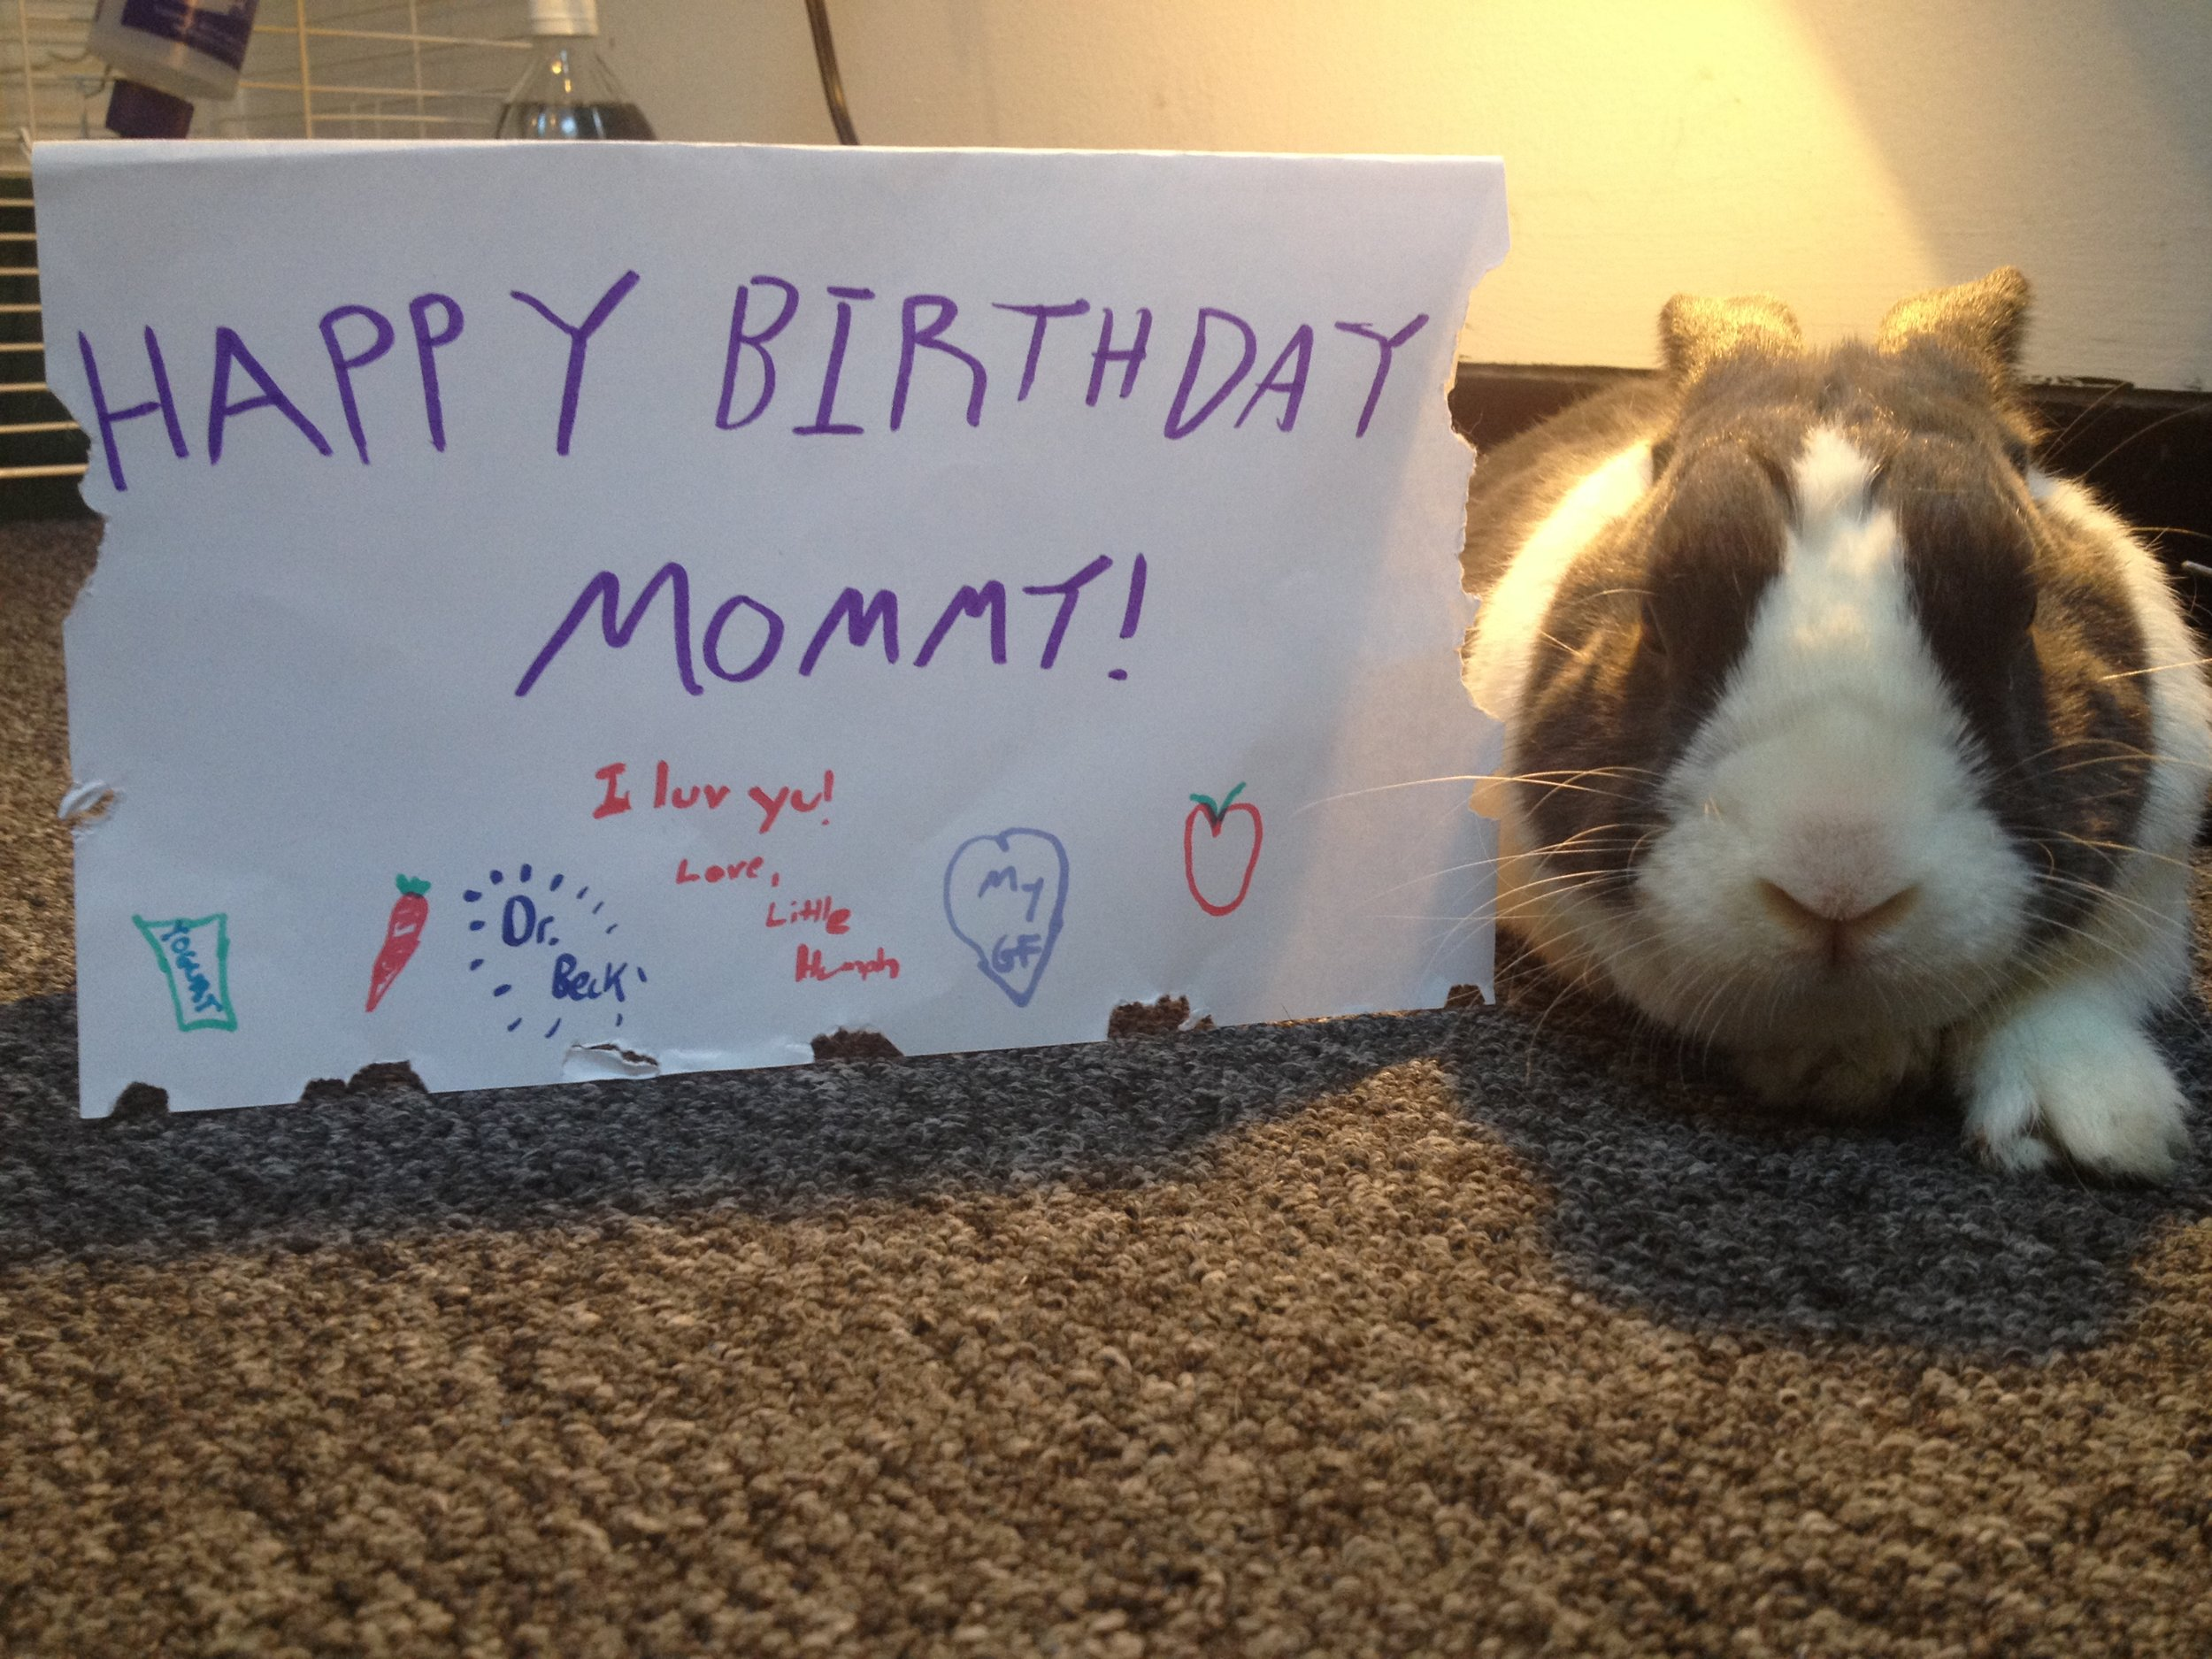 Bunny Wishes His Human a Happy Birthday